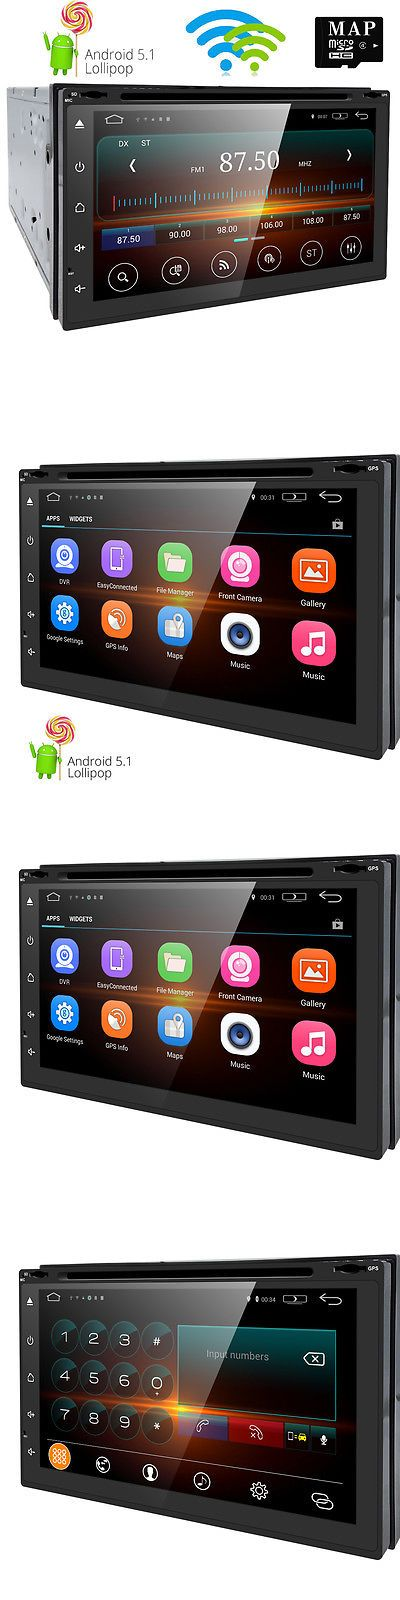 Vehicle Electronics And GPS: 72Din Android 5.1 Car Stereo Quad Core 3G Wifi Gps Nav Dvd Player Auto Radio BUY IT NOW ONLY: $99.99